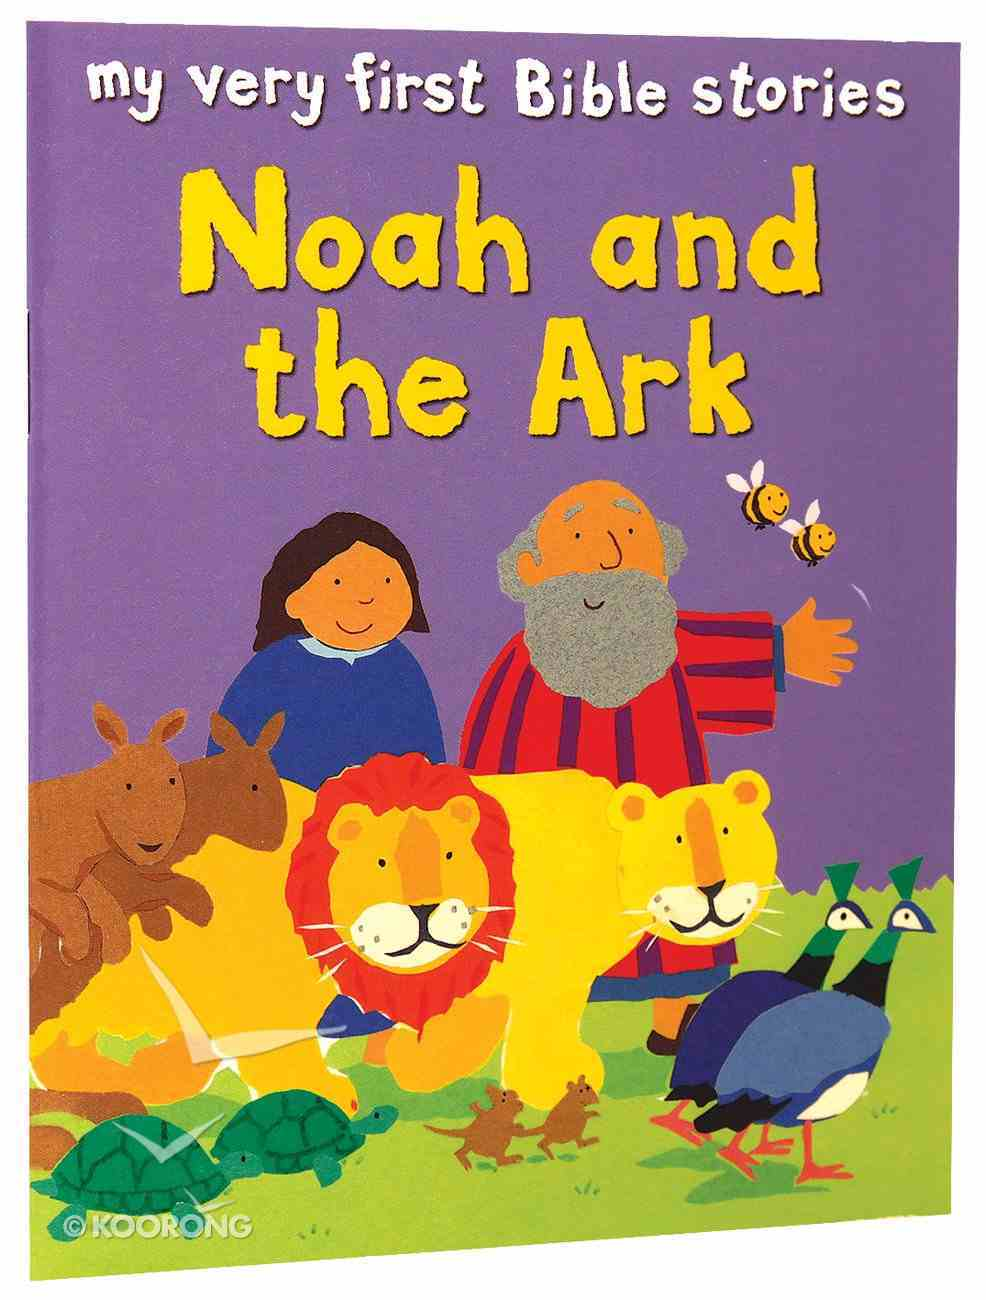 Noah and the Ark (My Very First Bible Stories Series) Paperback